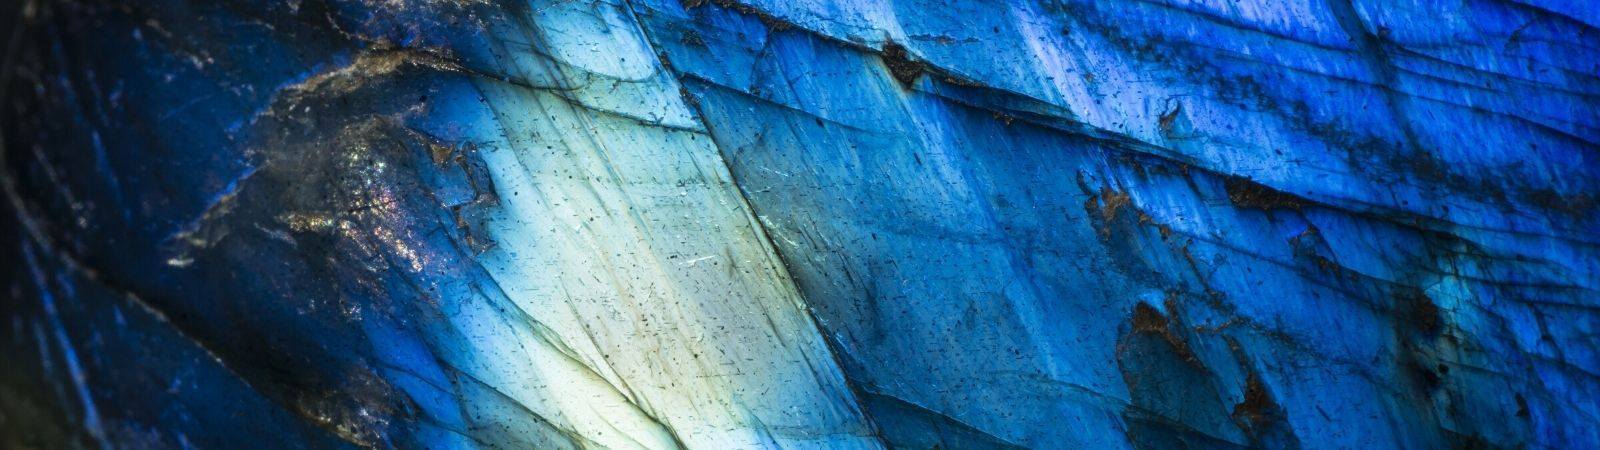 Close up view of polished cobalt with gradient blue colors throughout with lots of shine.